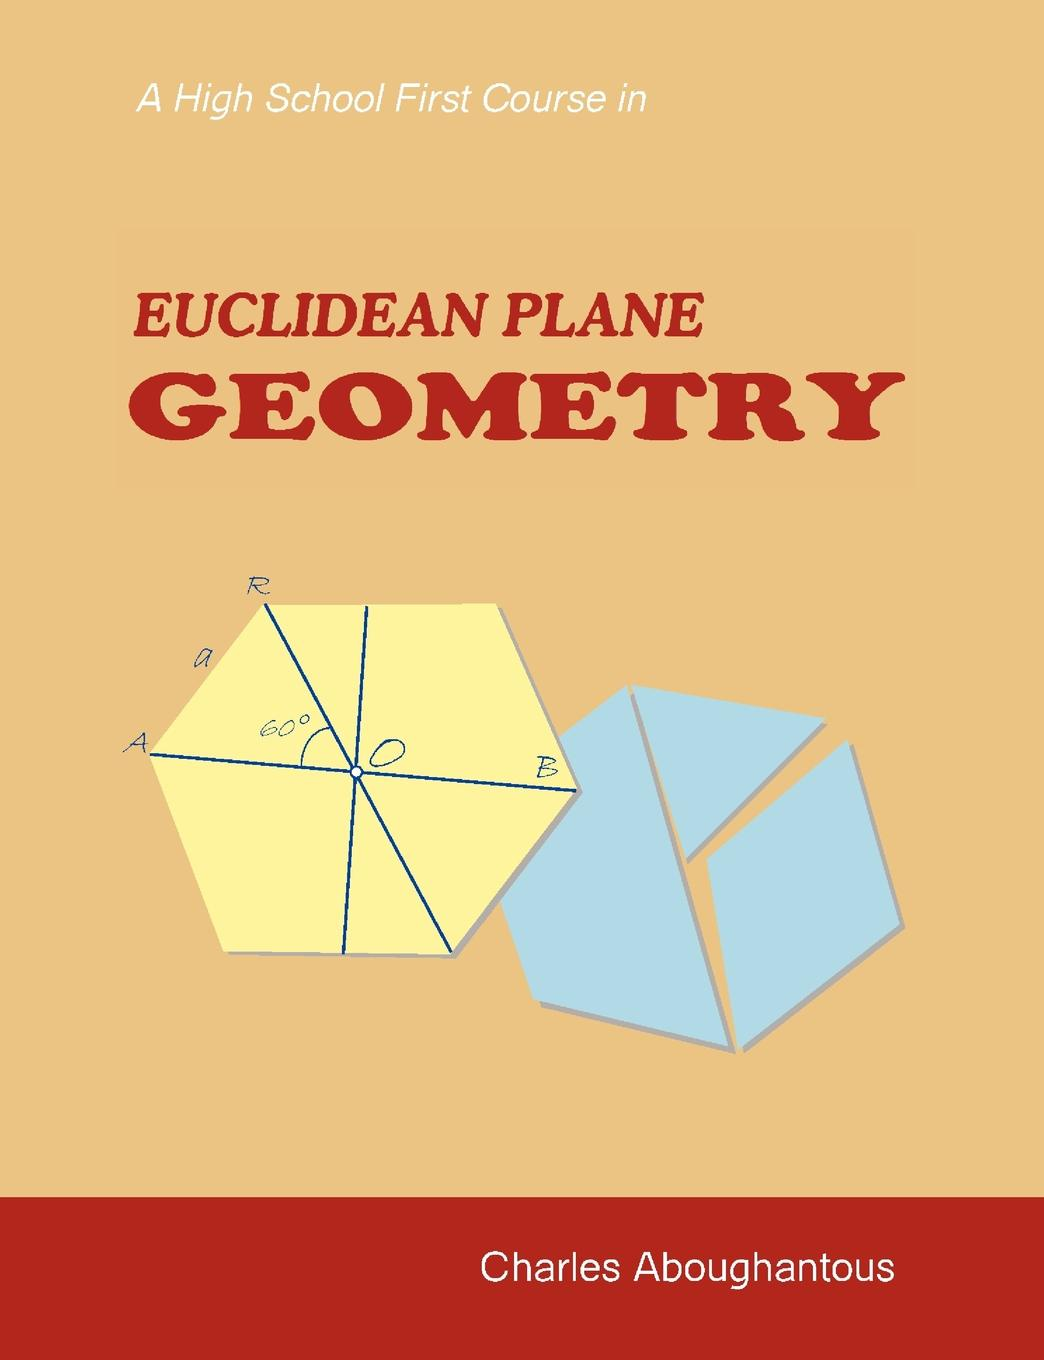 Charles H. Aboughantous A High School First Course in Euclidean Plane Geometry the penguin problems book notebook